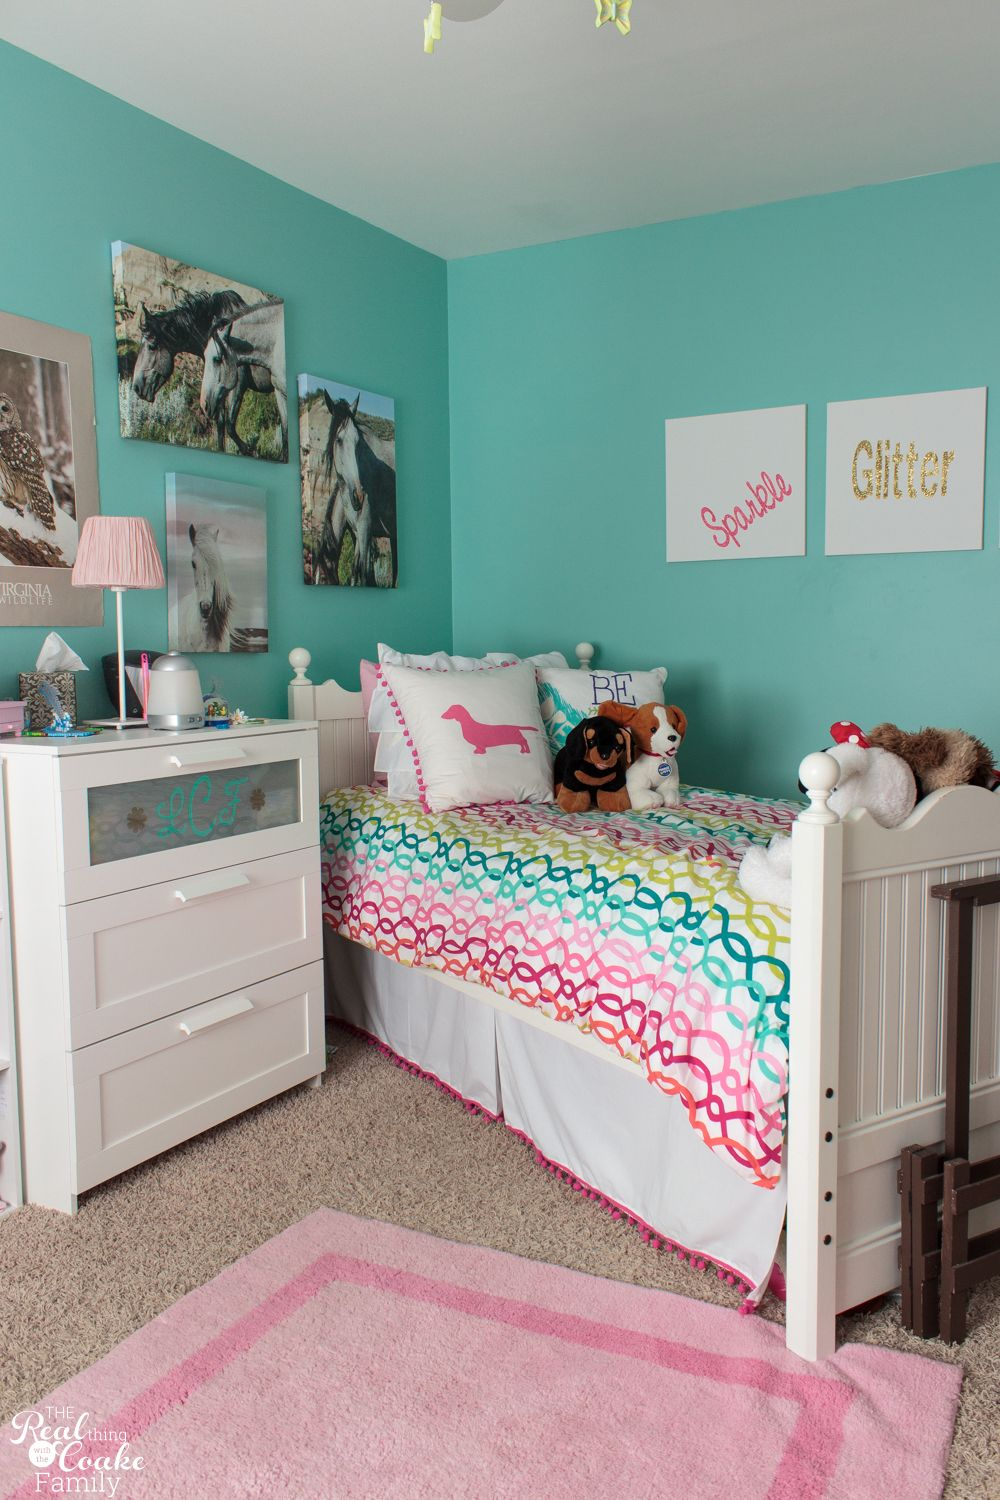 cute bedroom ideas for tween girls kids girls bedroom colors cute bedroom ideas blue. Black Bedroom Furniture Sets. Home Design Ideas